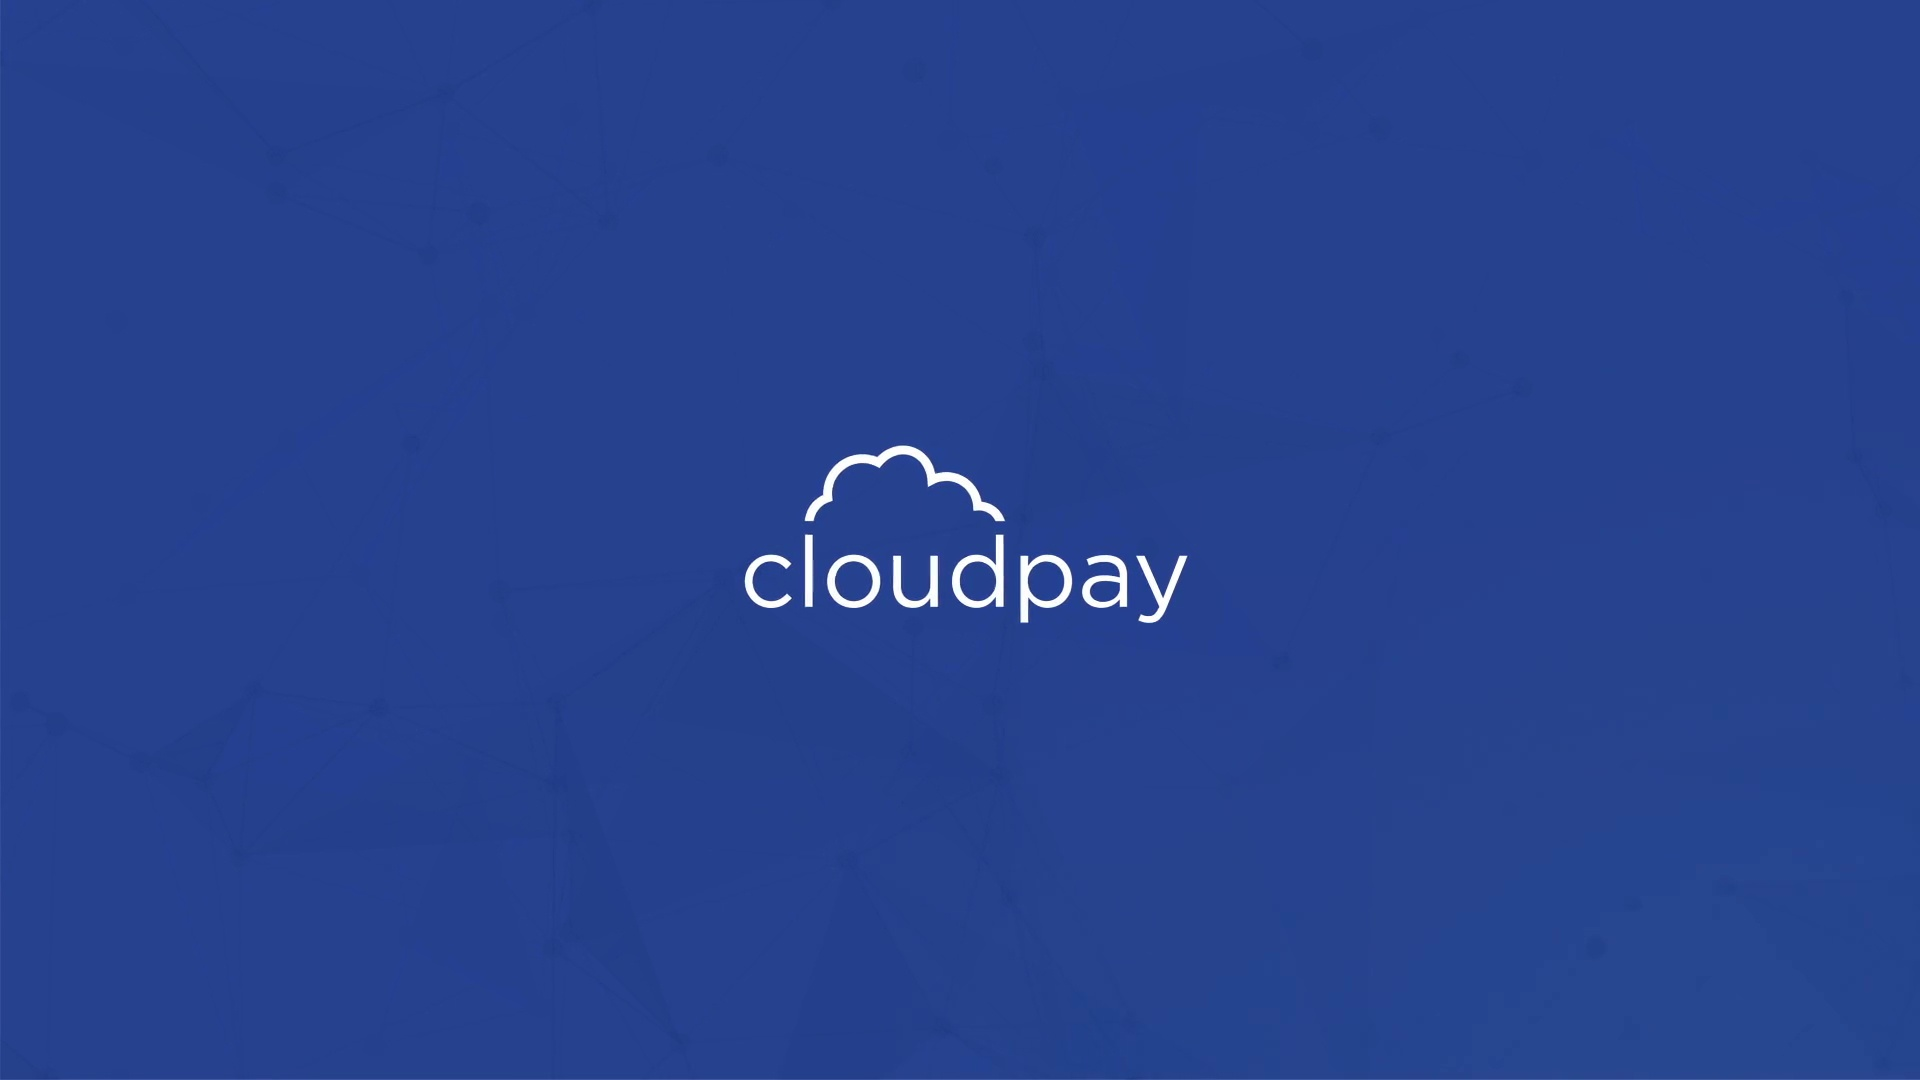 Groupon - Rethinking Global Payroll with CloudPay